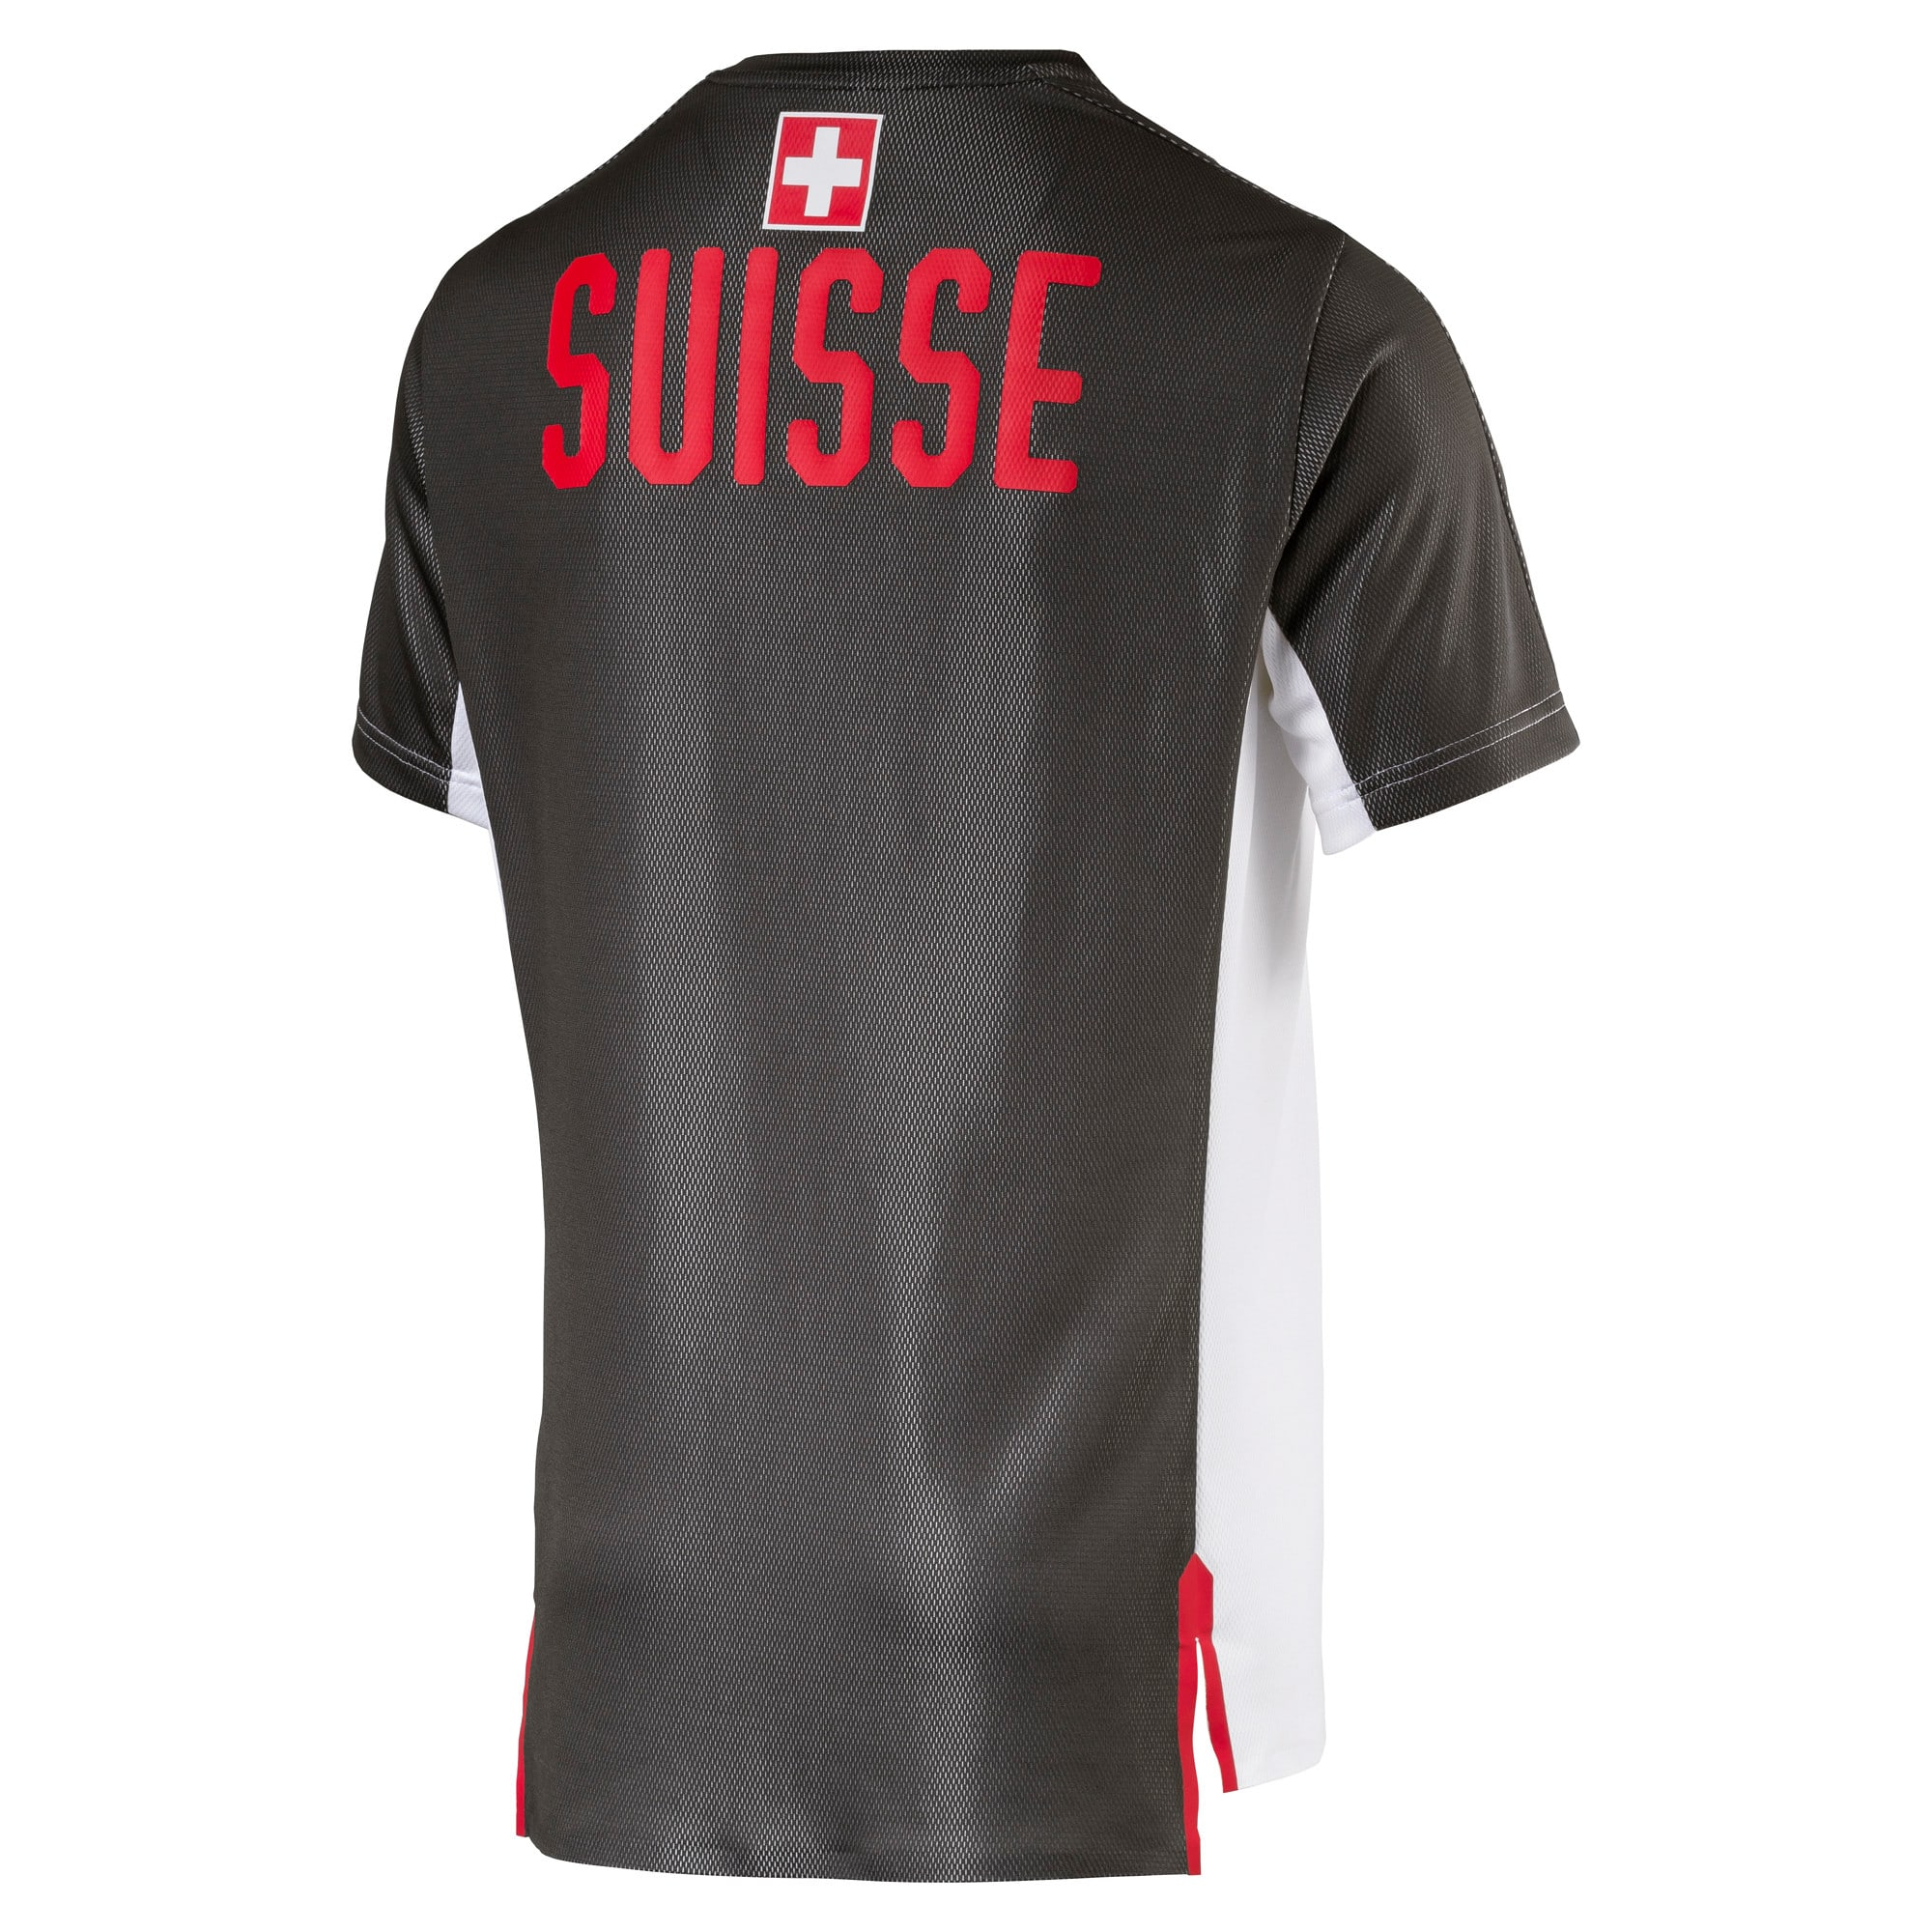 Thumbnail 4 of SUISSE Stadium Jersey, Puma White-Asphalt, medium